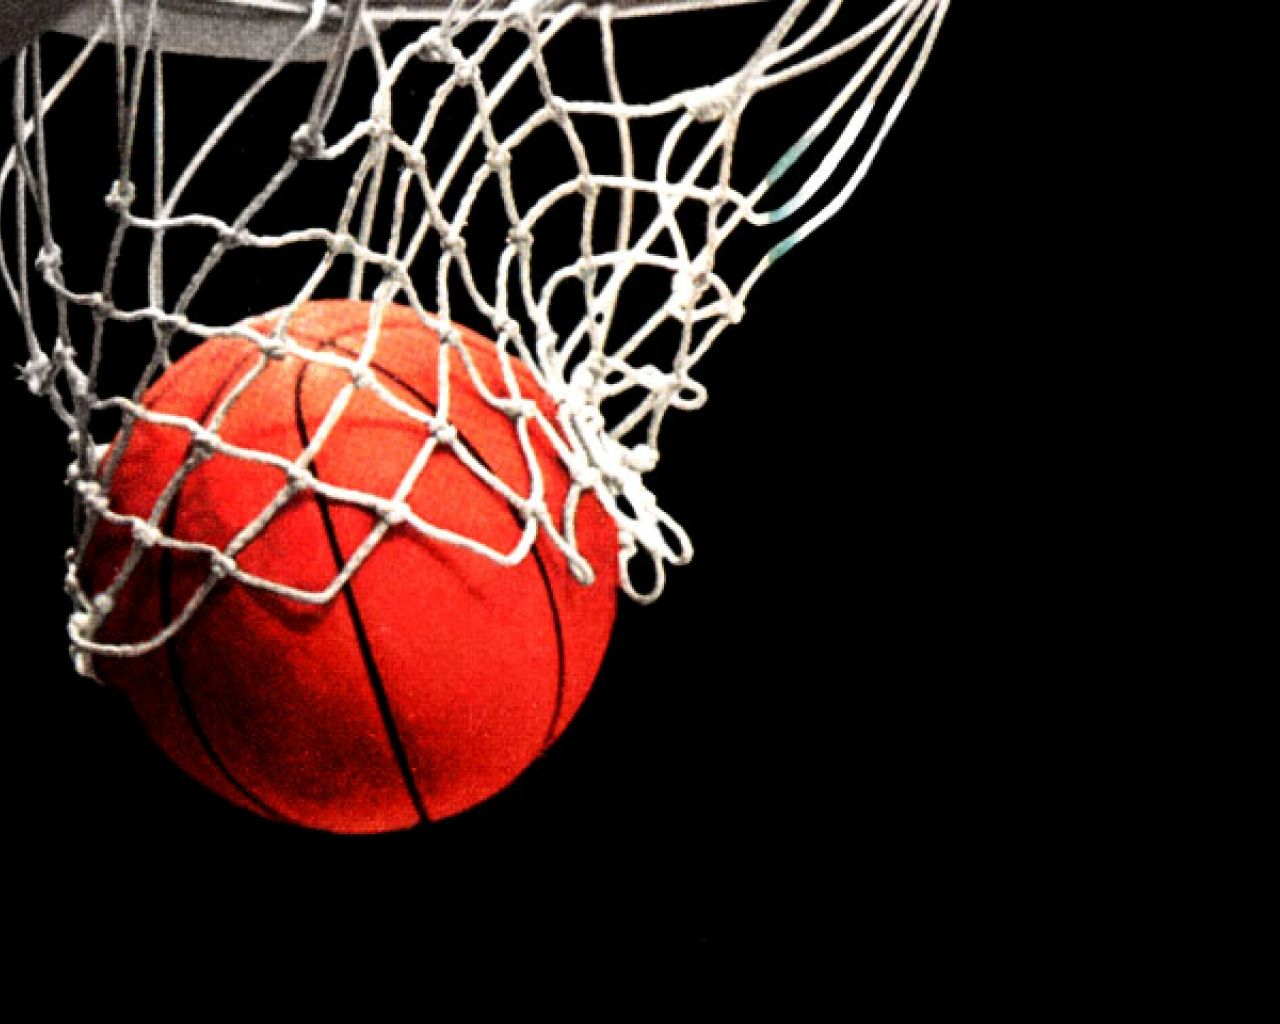 Cool Basketball Wallpapers for iPhone | HD Wallpapers | Pinterest